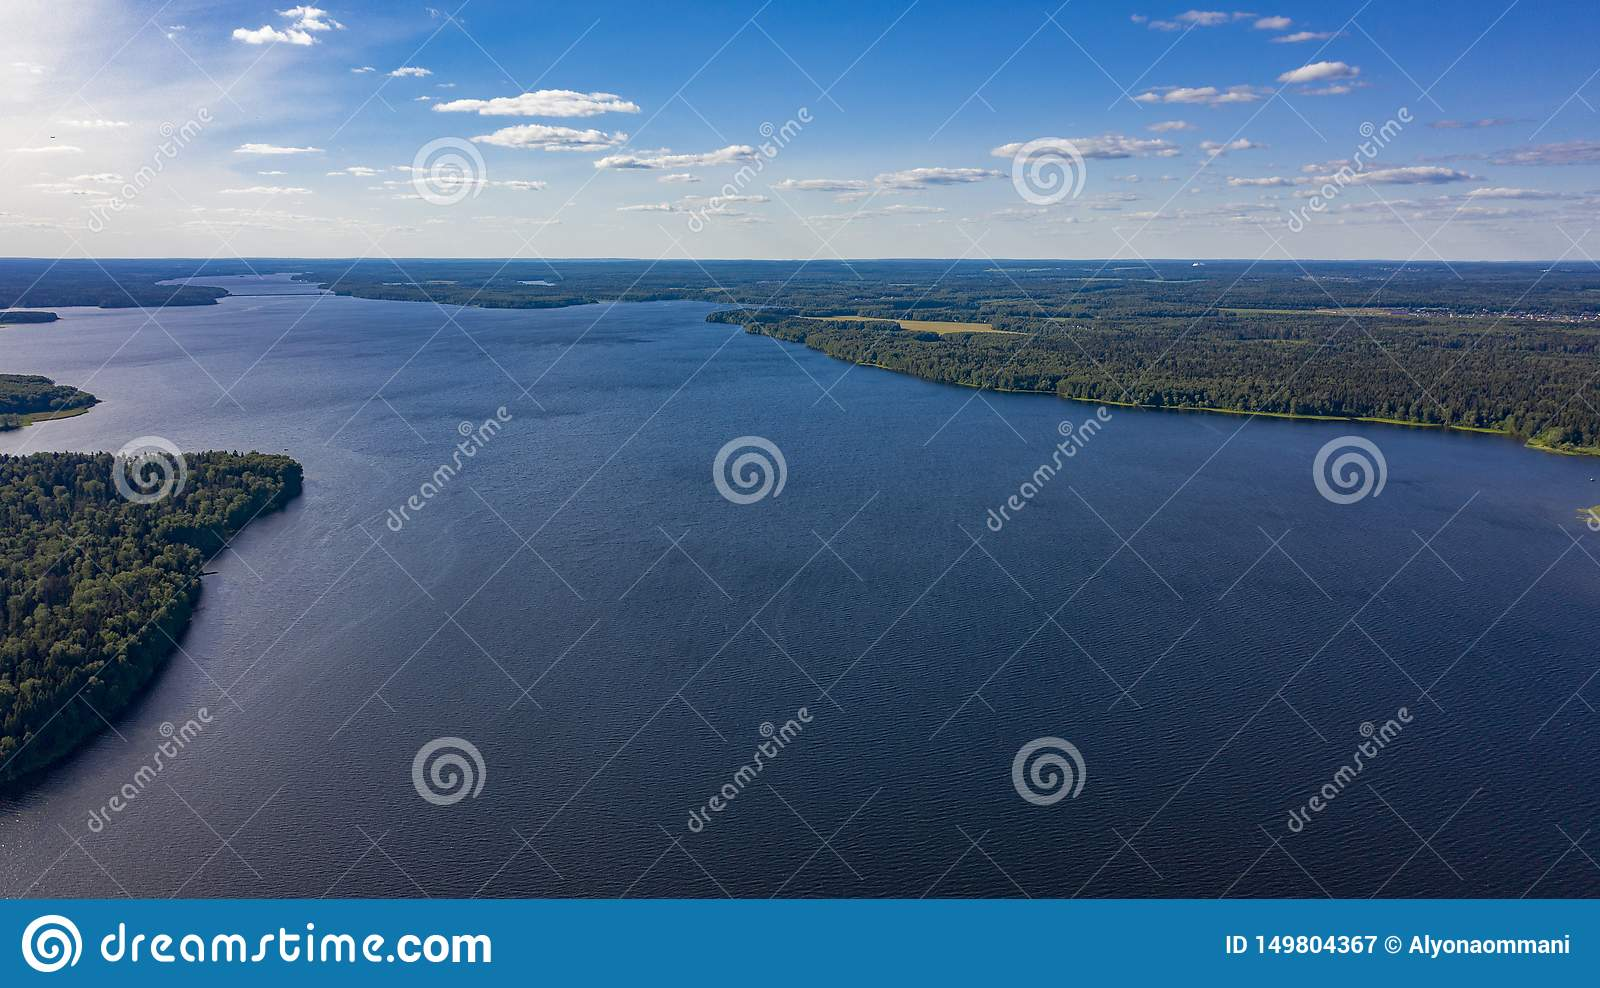 Aerial photo of the big lake in the forest with cumulus clouds